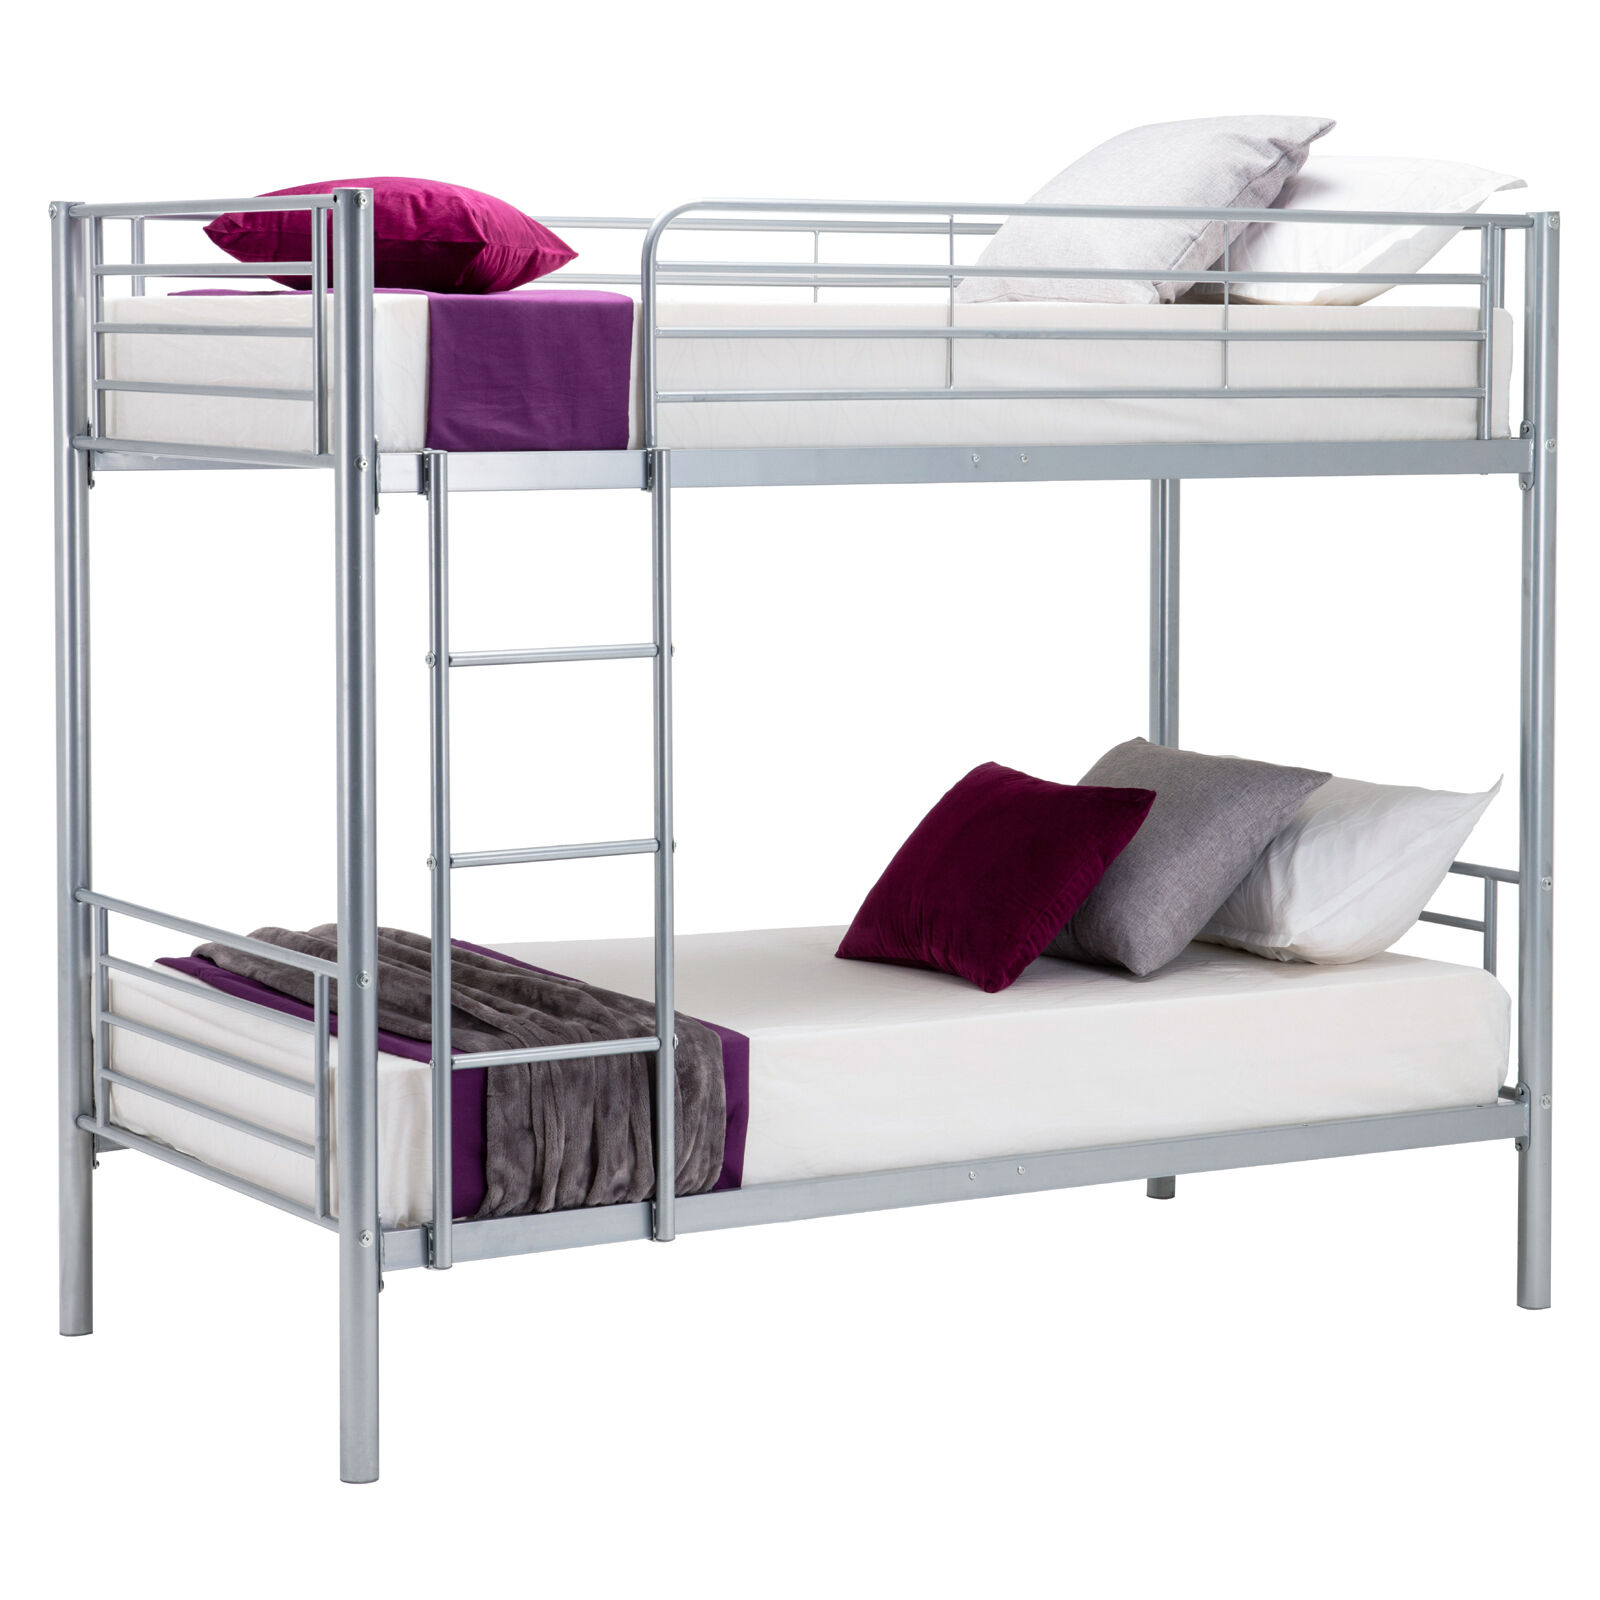 Modern 2x3ft single silver metal bunk bed frame 2 person for Bunk bed frame with mattress